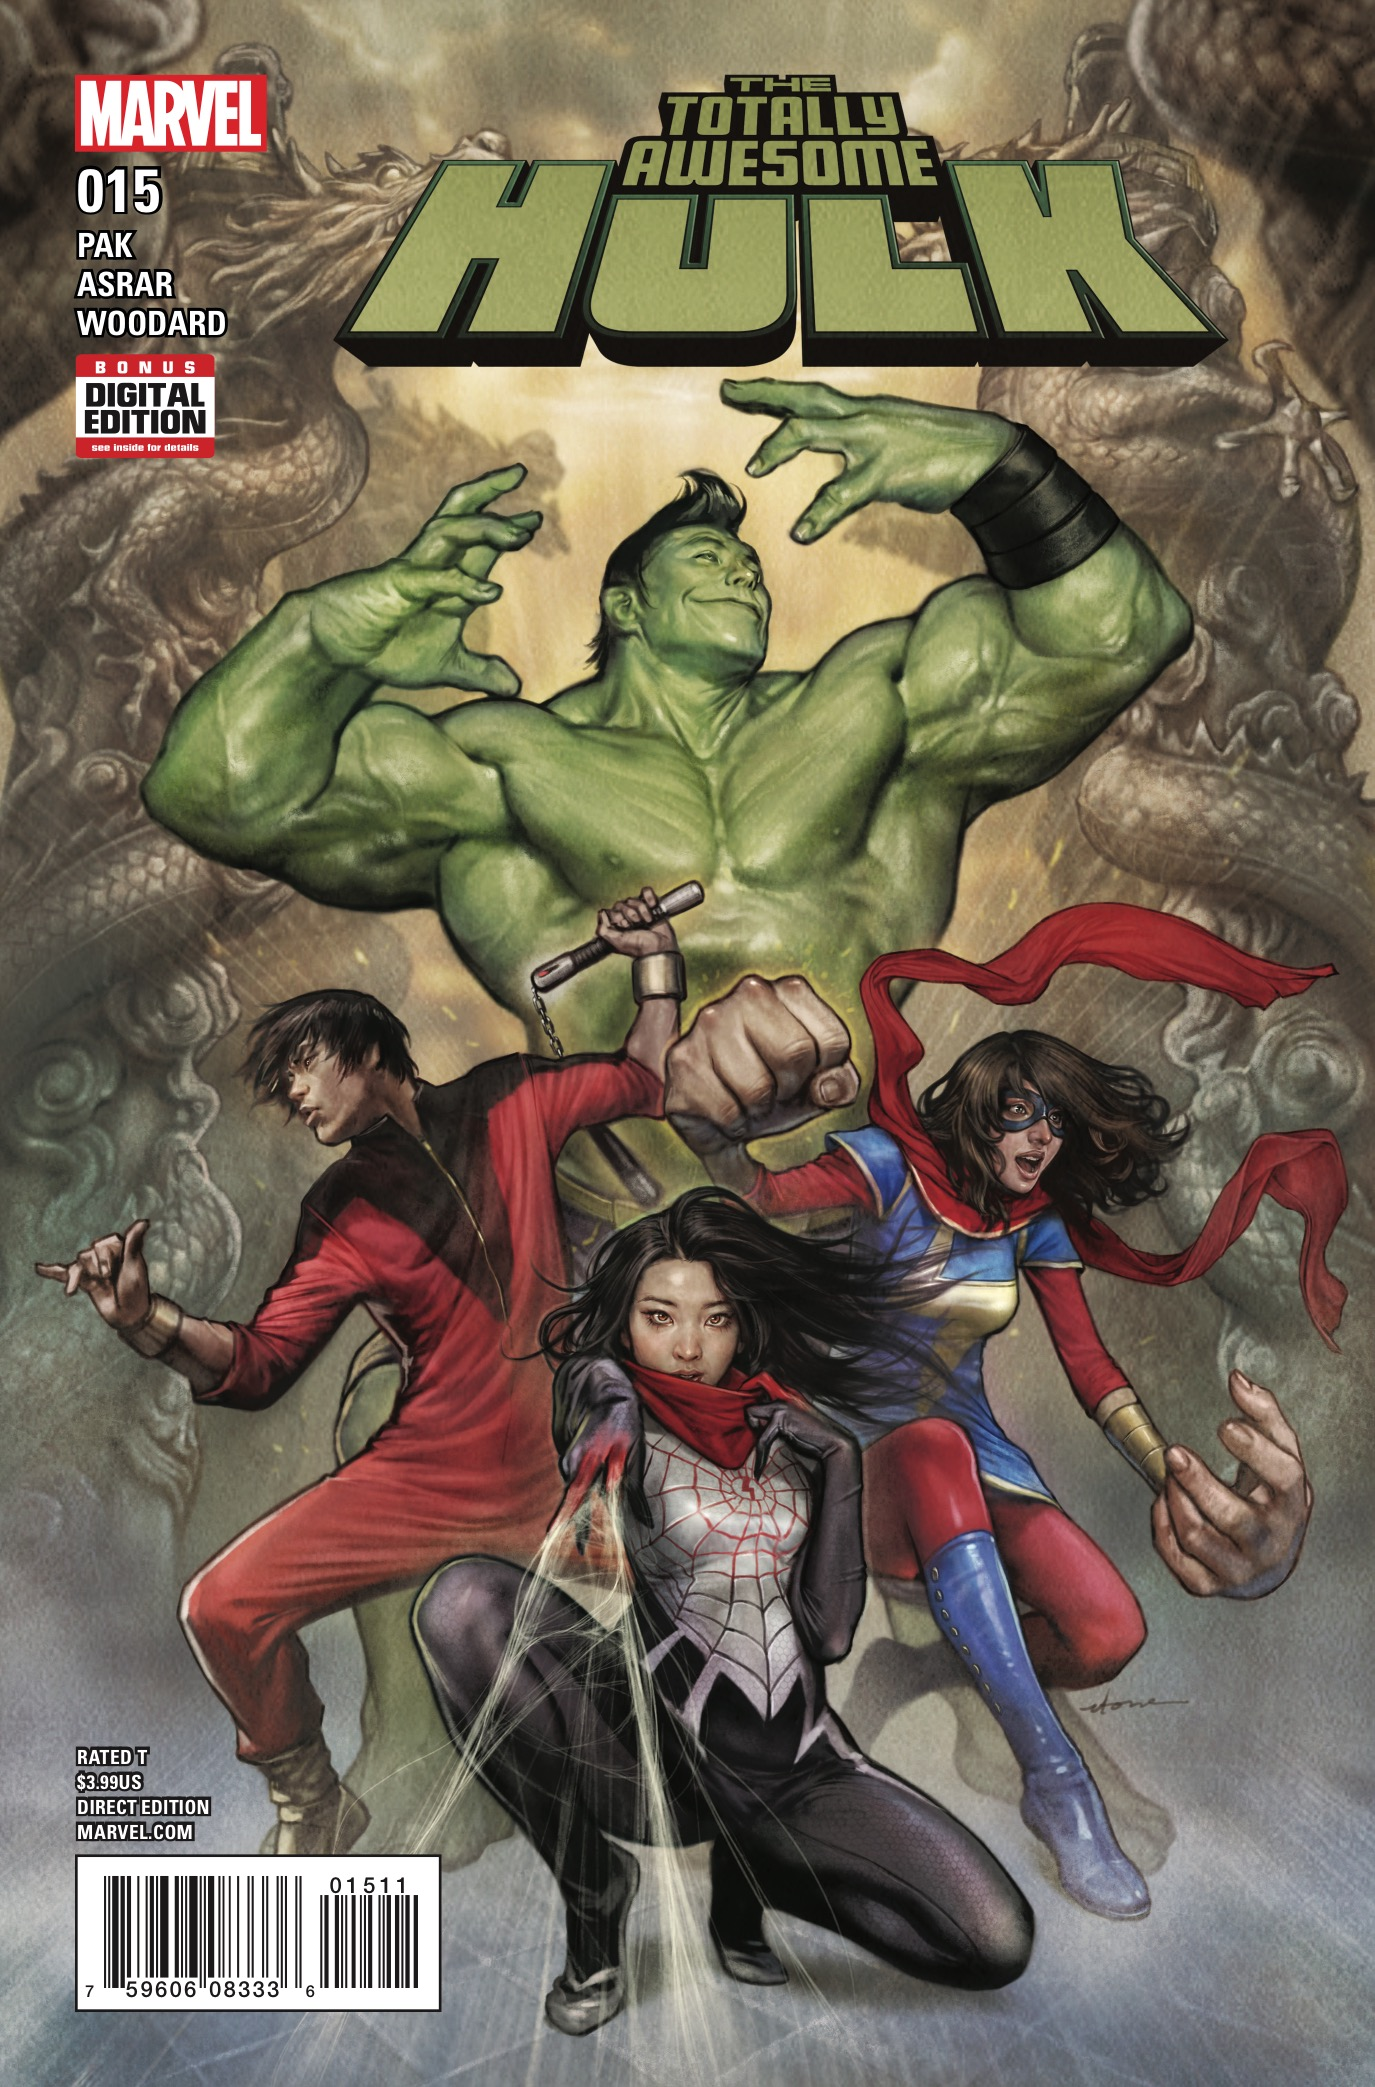 Marvel Preview: Totally Awesome Hulk #15